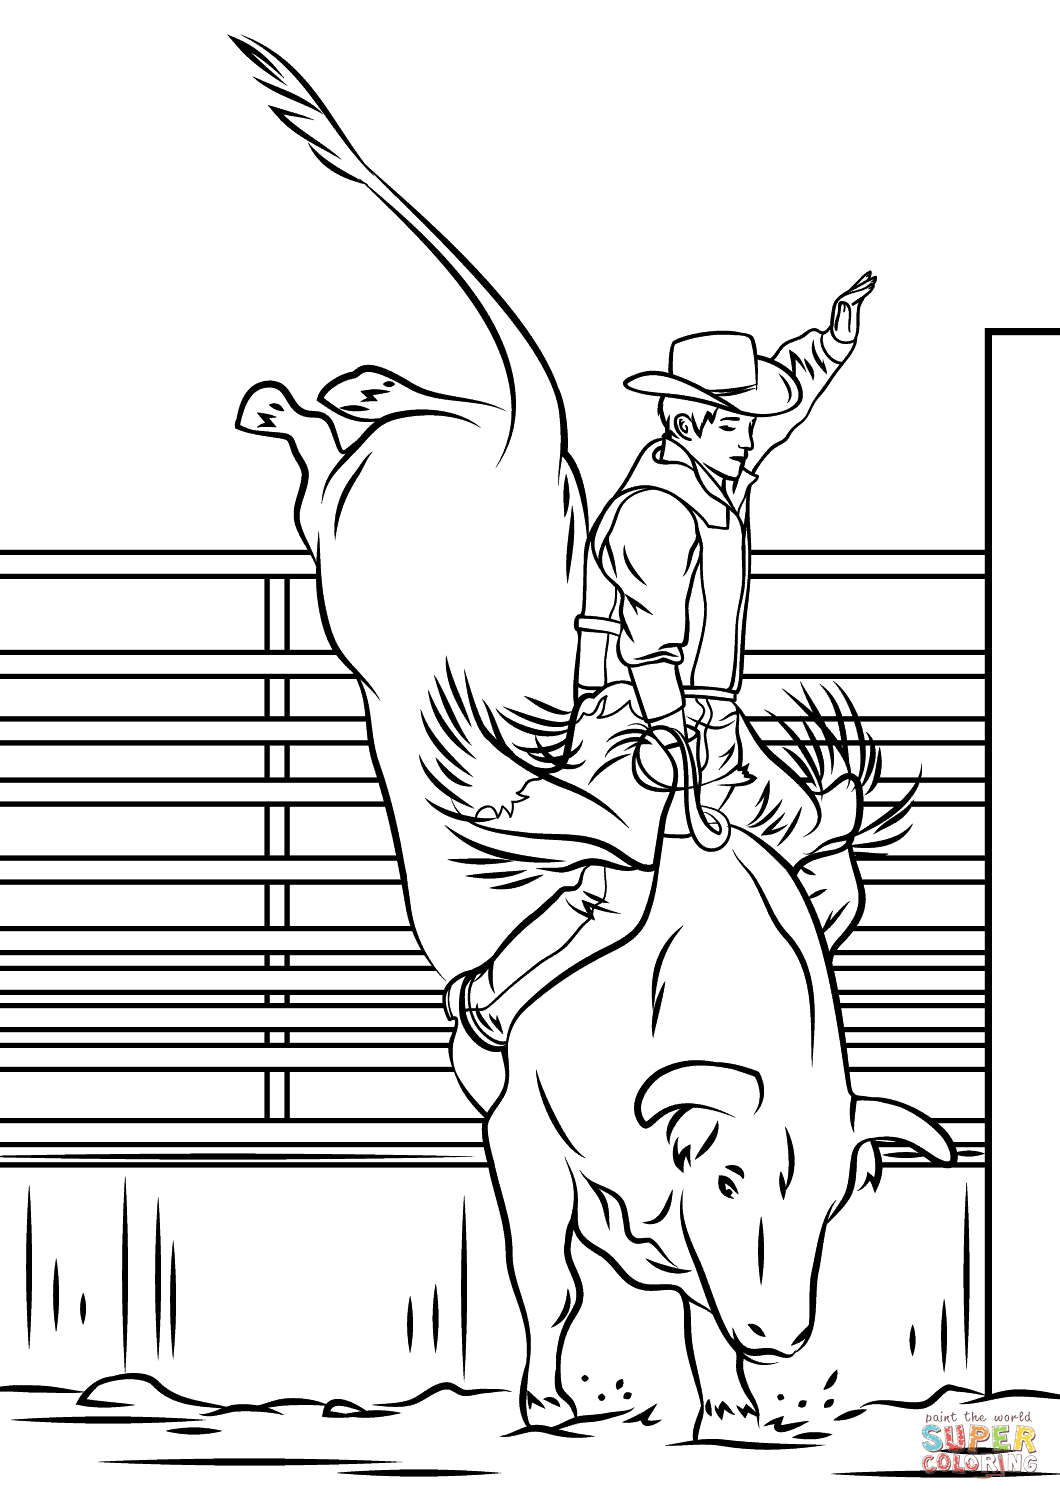 Bull Riding Rodeo Coloring Page